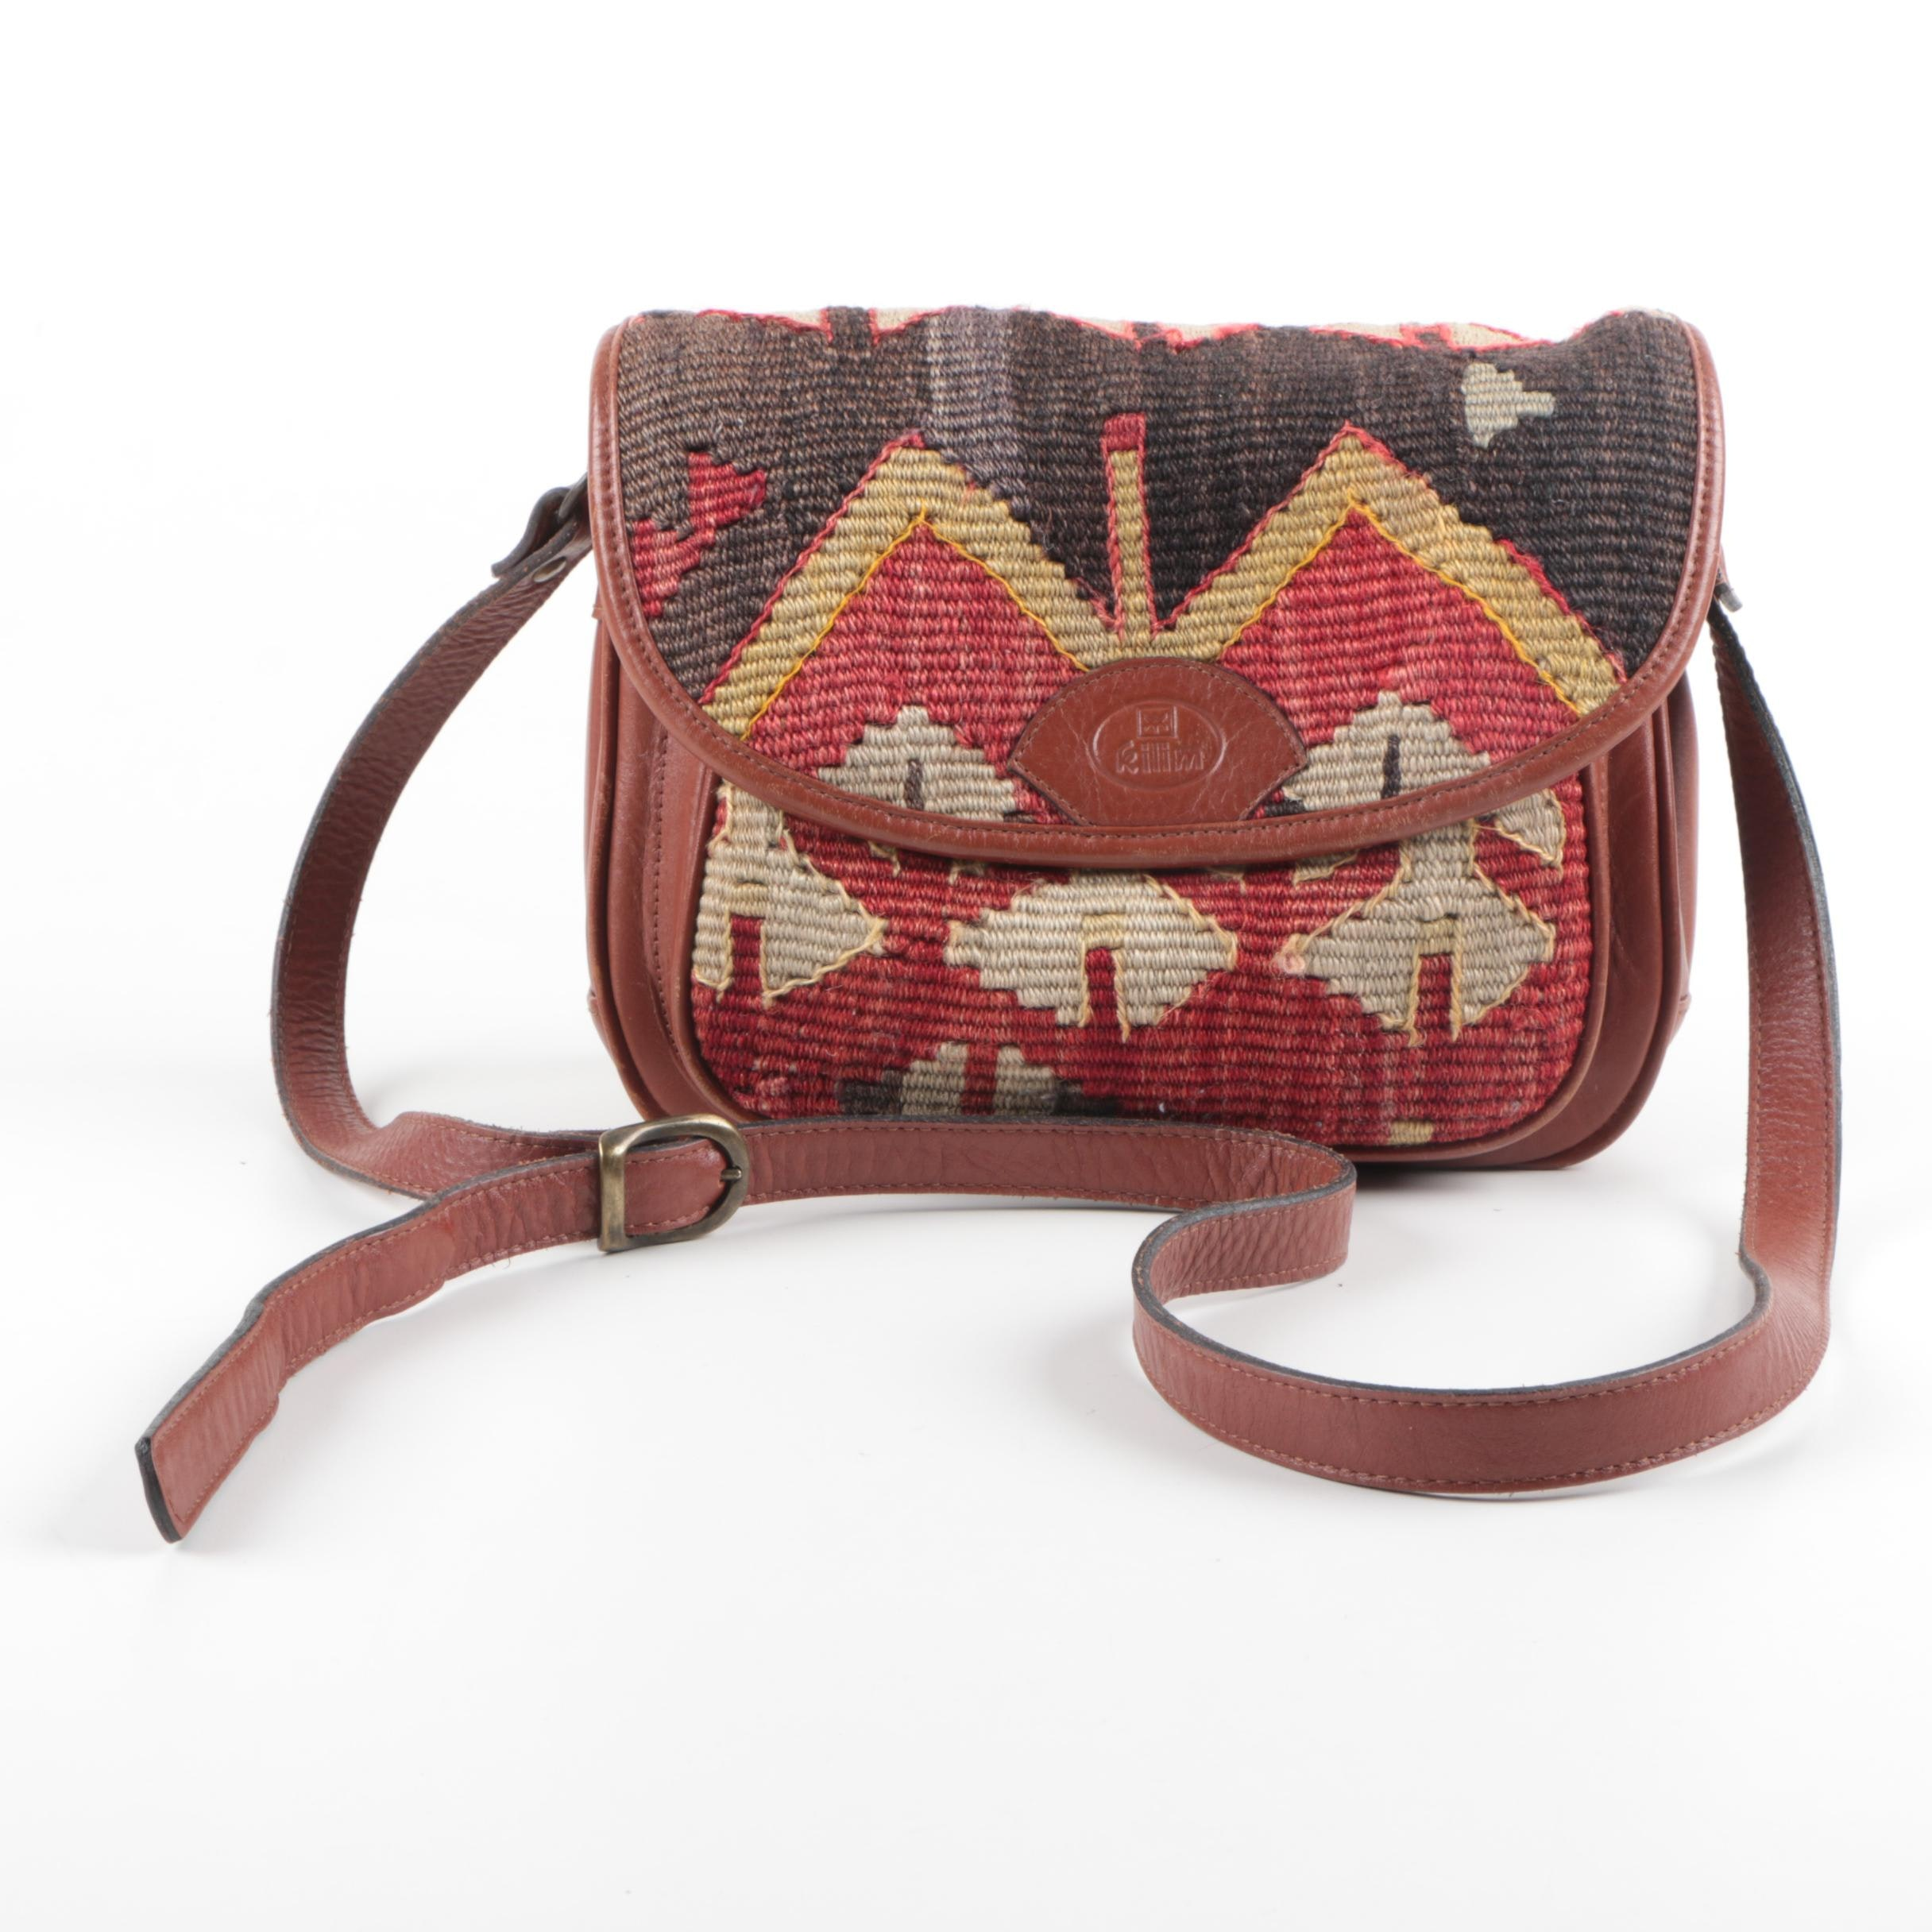 Kilim Textile and Leather Shoulder Bag